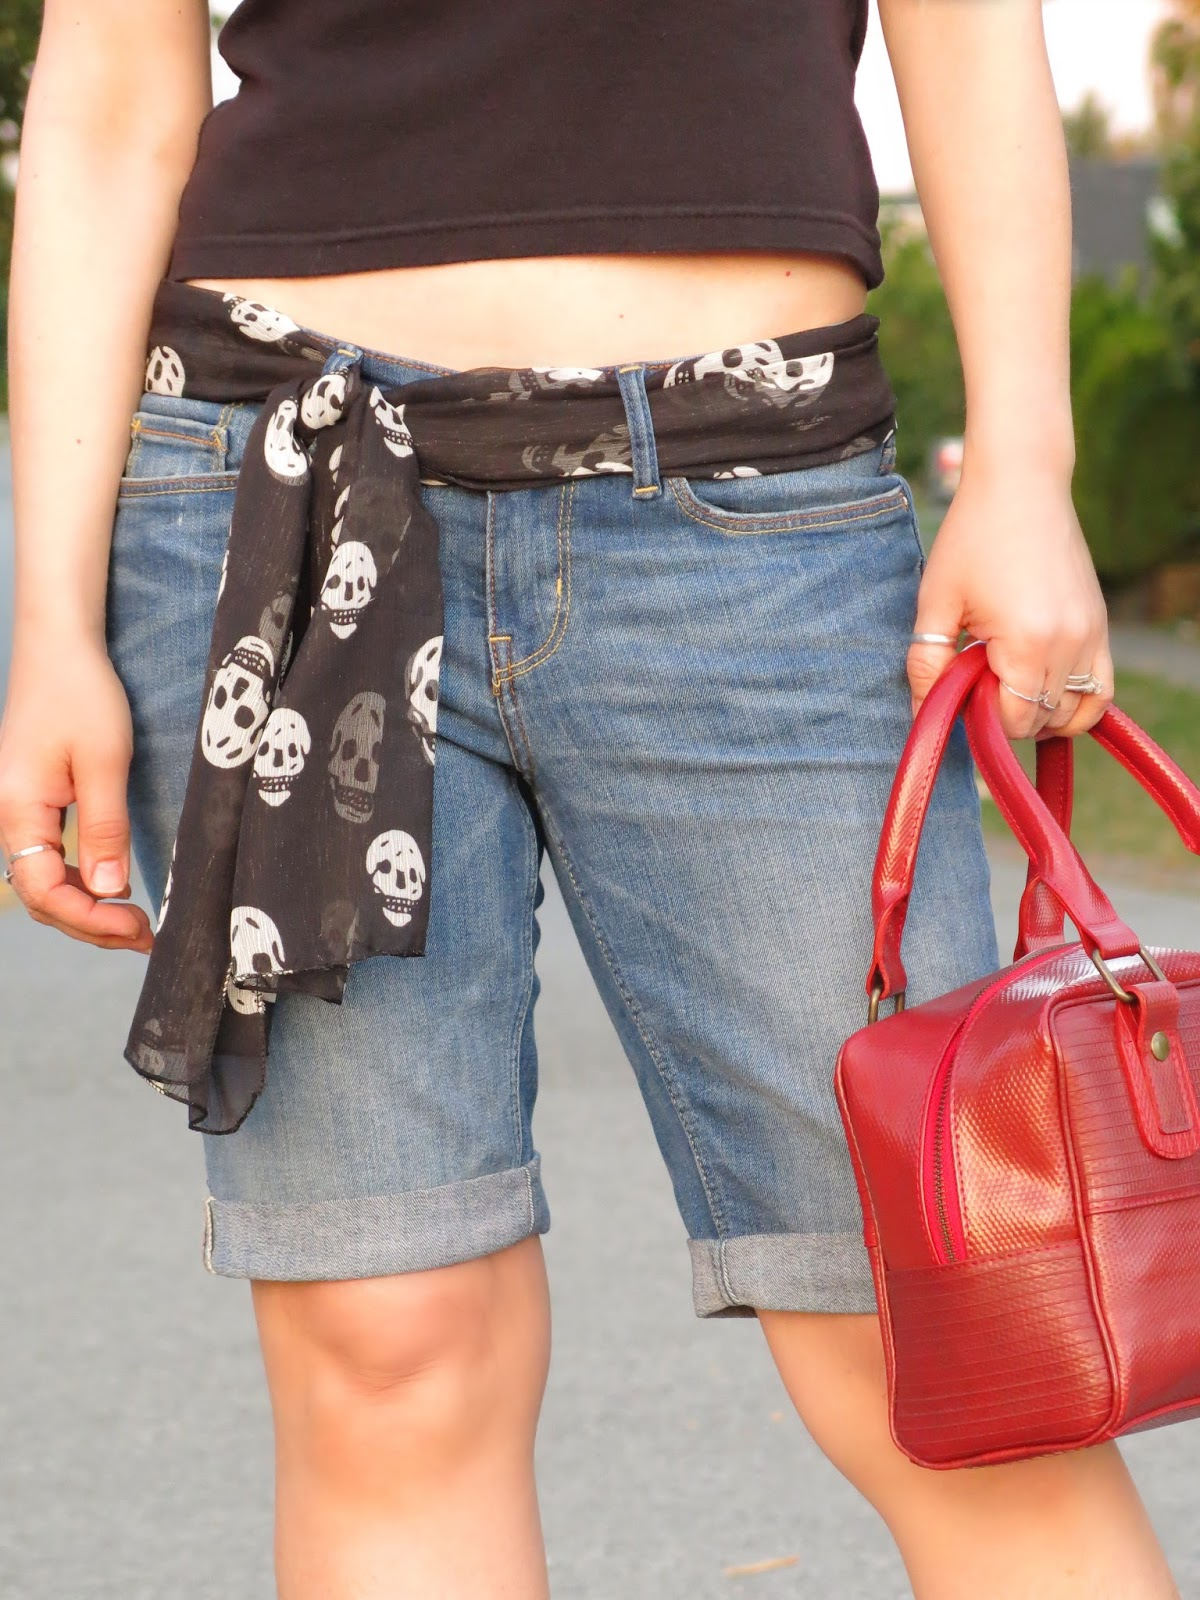 denim bermuda shorts, scull-print scarf, and Elvis & Kresse bag